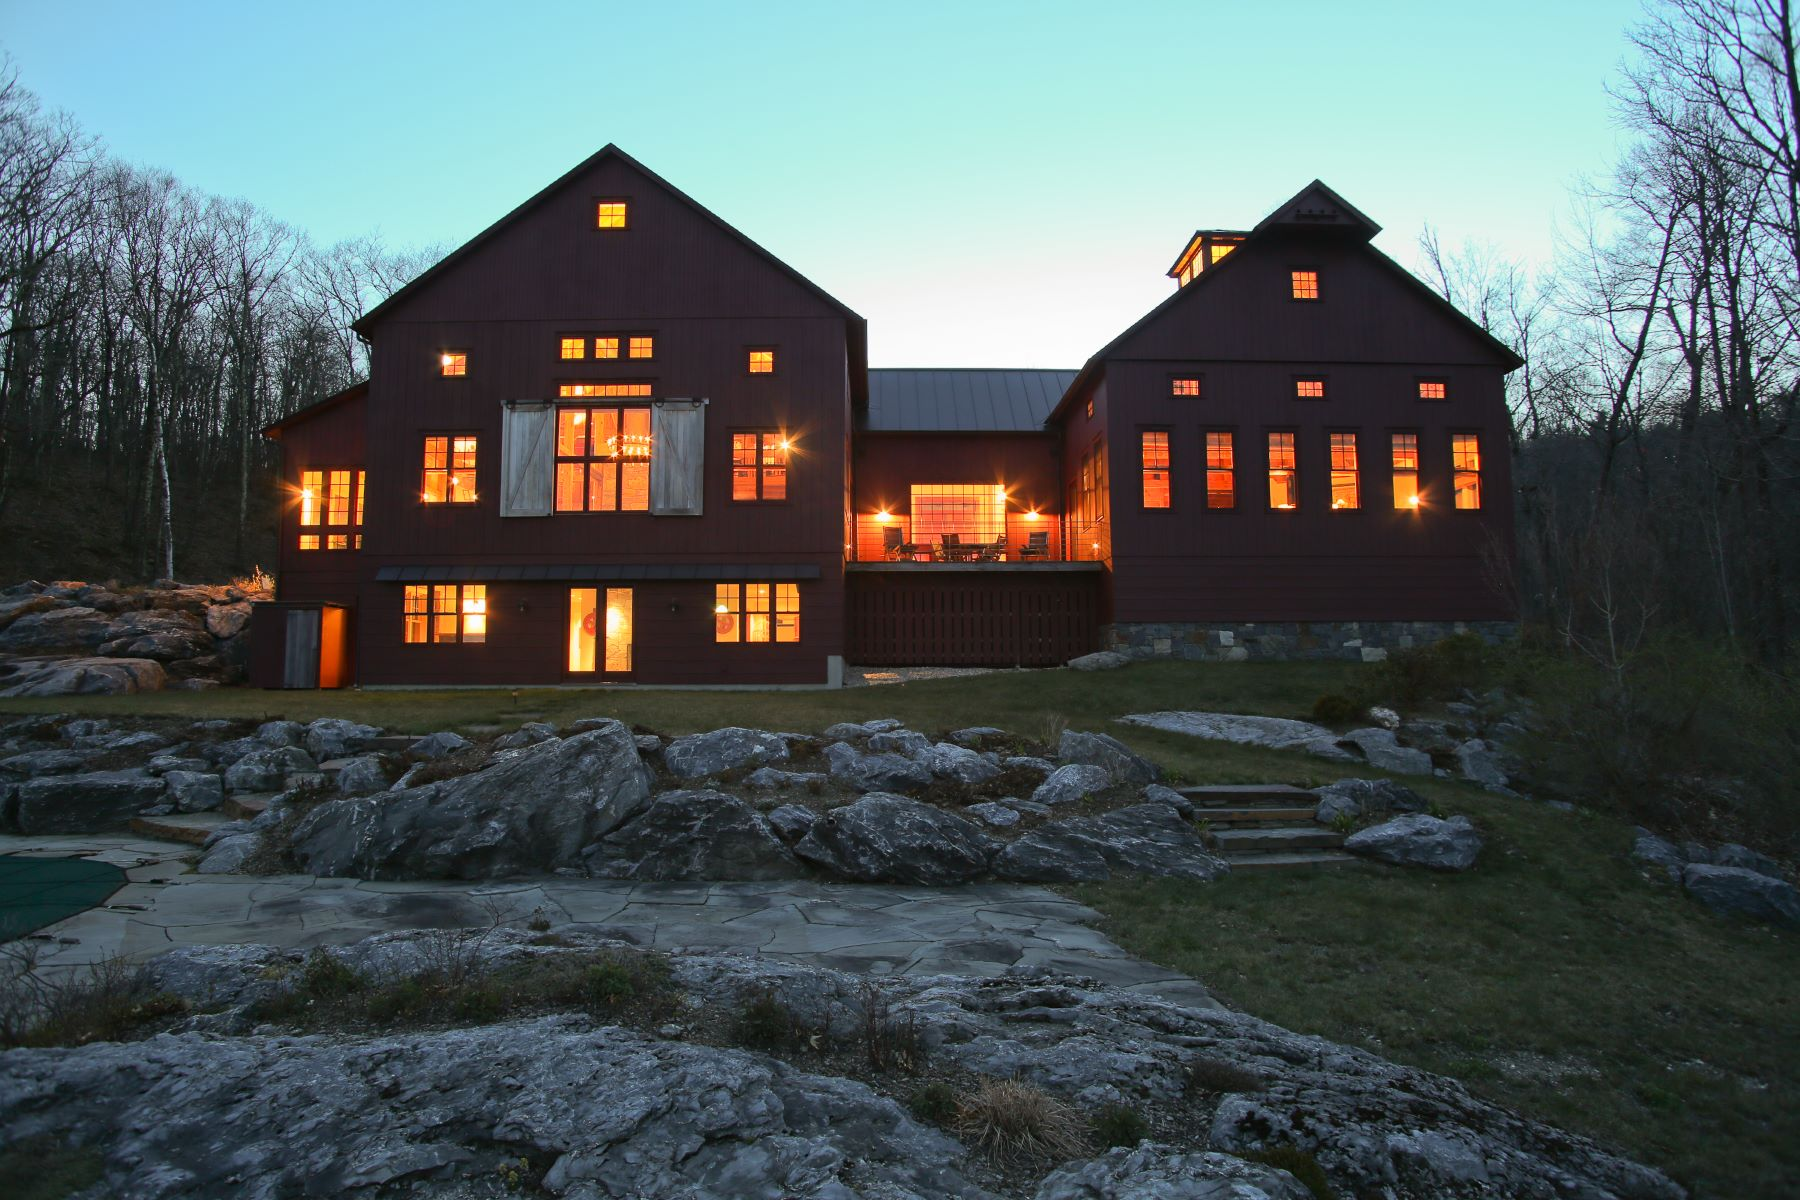 Single Family Home for Sale at Huge Views from Two Masterfully Reconfigured Post and Beam Structures 65 Shun Toll Rd Egremont, Massachusetts, 01230 United States